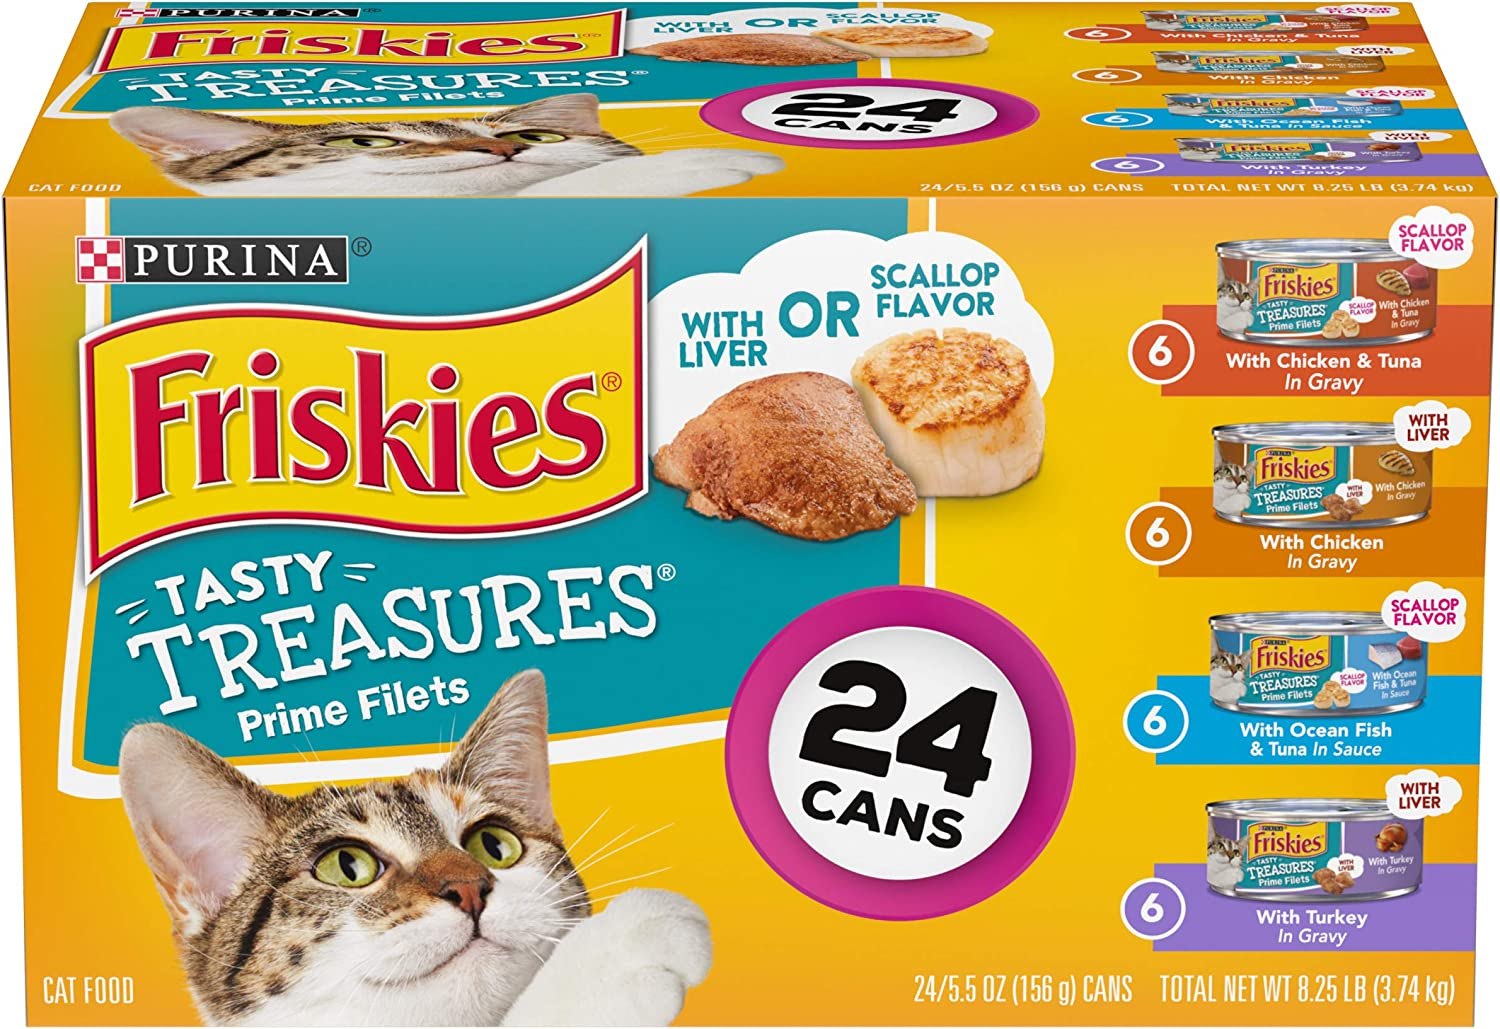 Purina Friskies Gravy Wet Cat Food Variety Pack, Tasty Treasures Prime Filets - (24) 5.5 oz. Cans